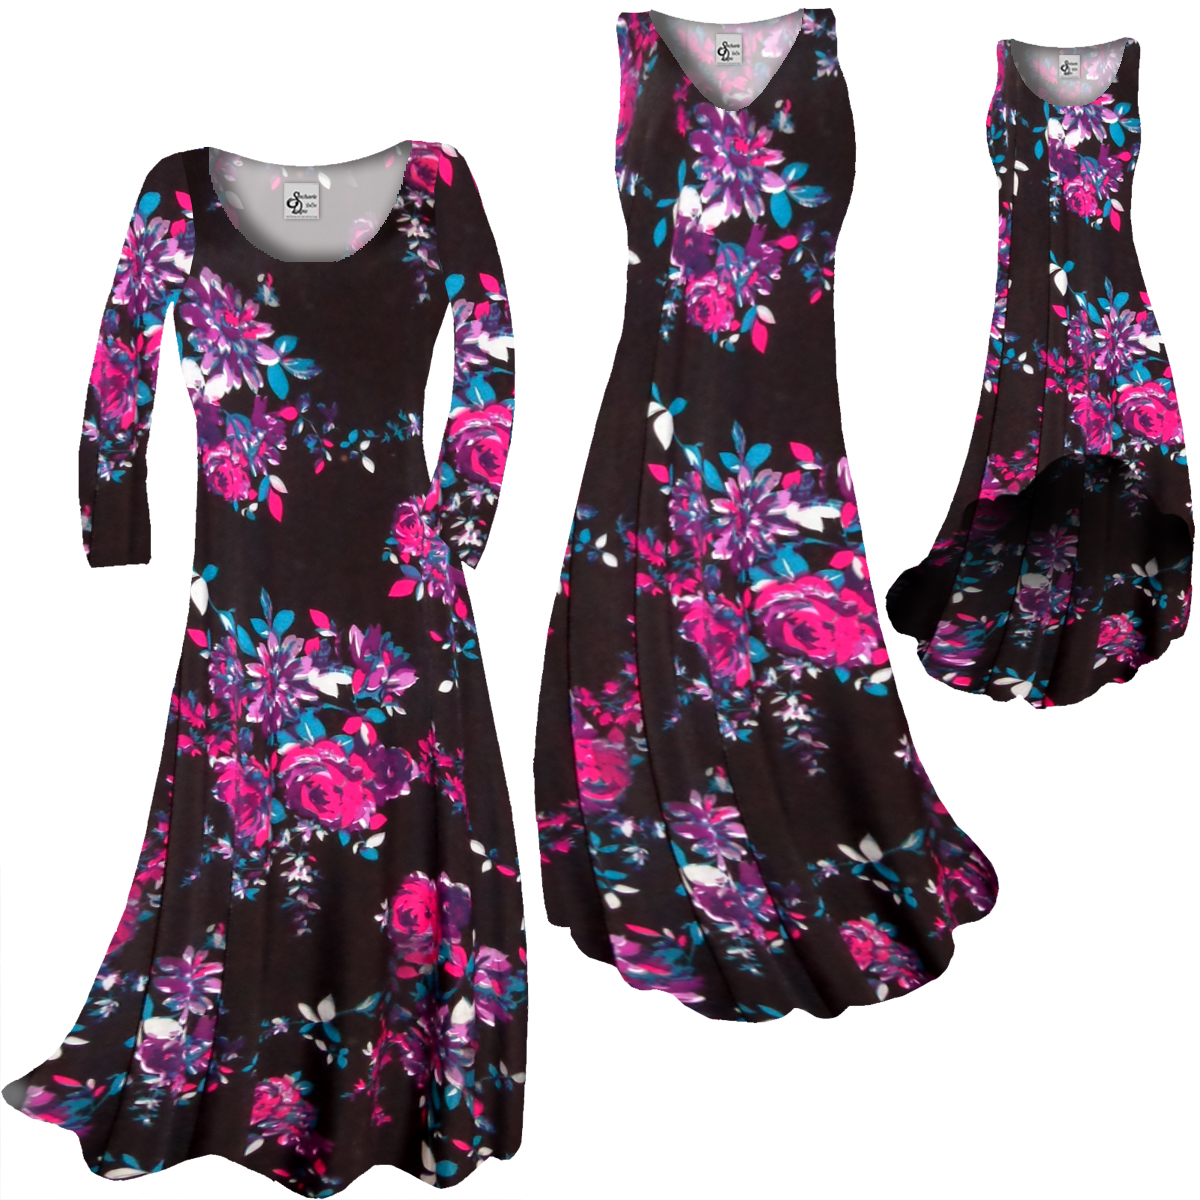 4447f716690 SOLD OUT! CLEARANCE! Plus Size Black With Fuchsia Rose Buds Slinky ...